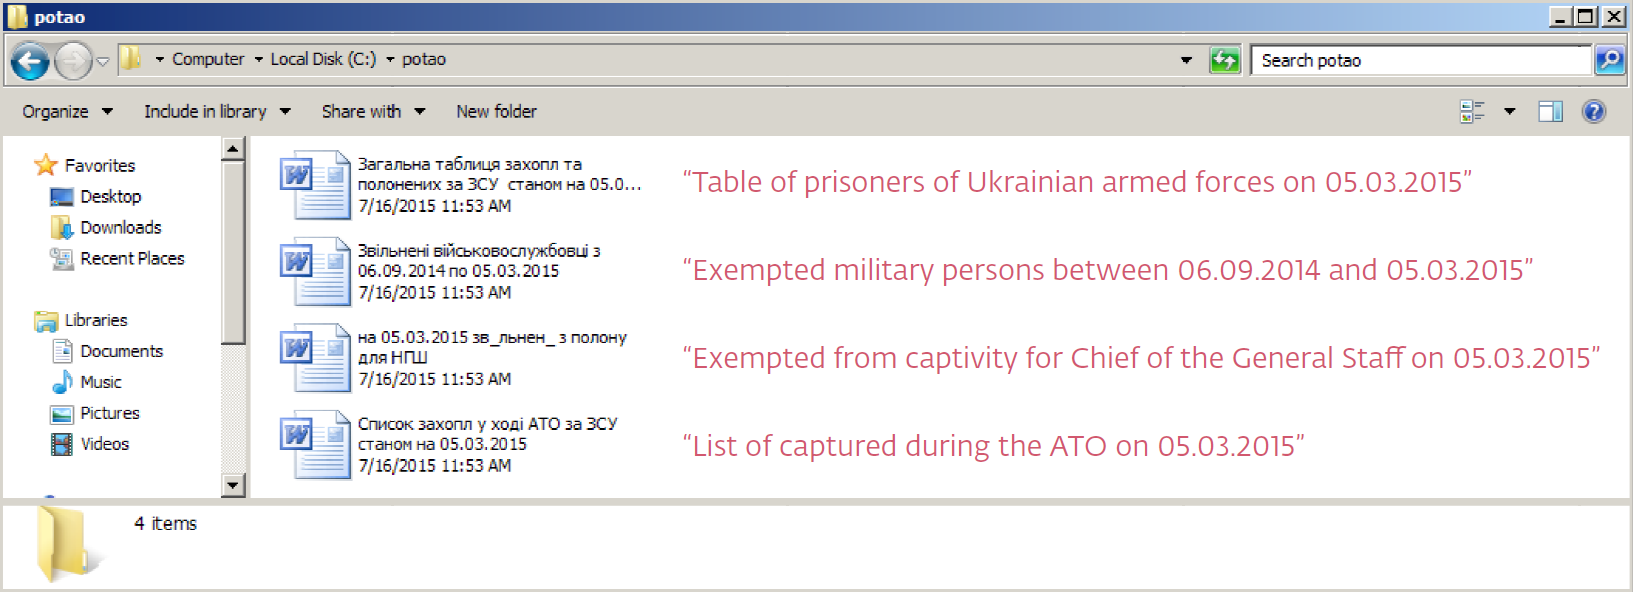 Figure 3 – Potao droppers with MS Word icons and file names used in attacks against high-value Ukrainian targets to capture the interest of recipients